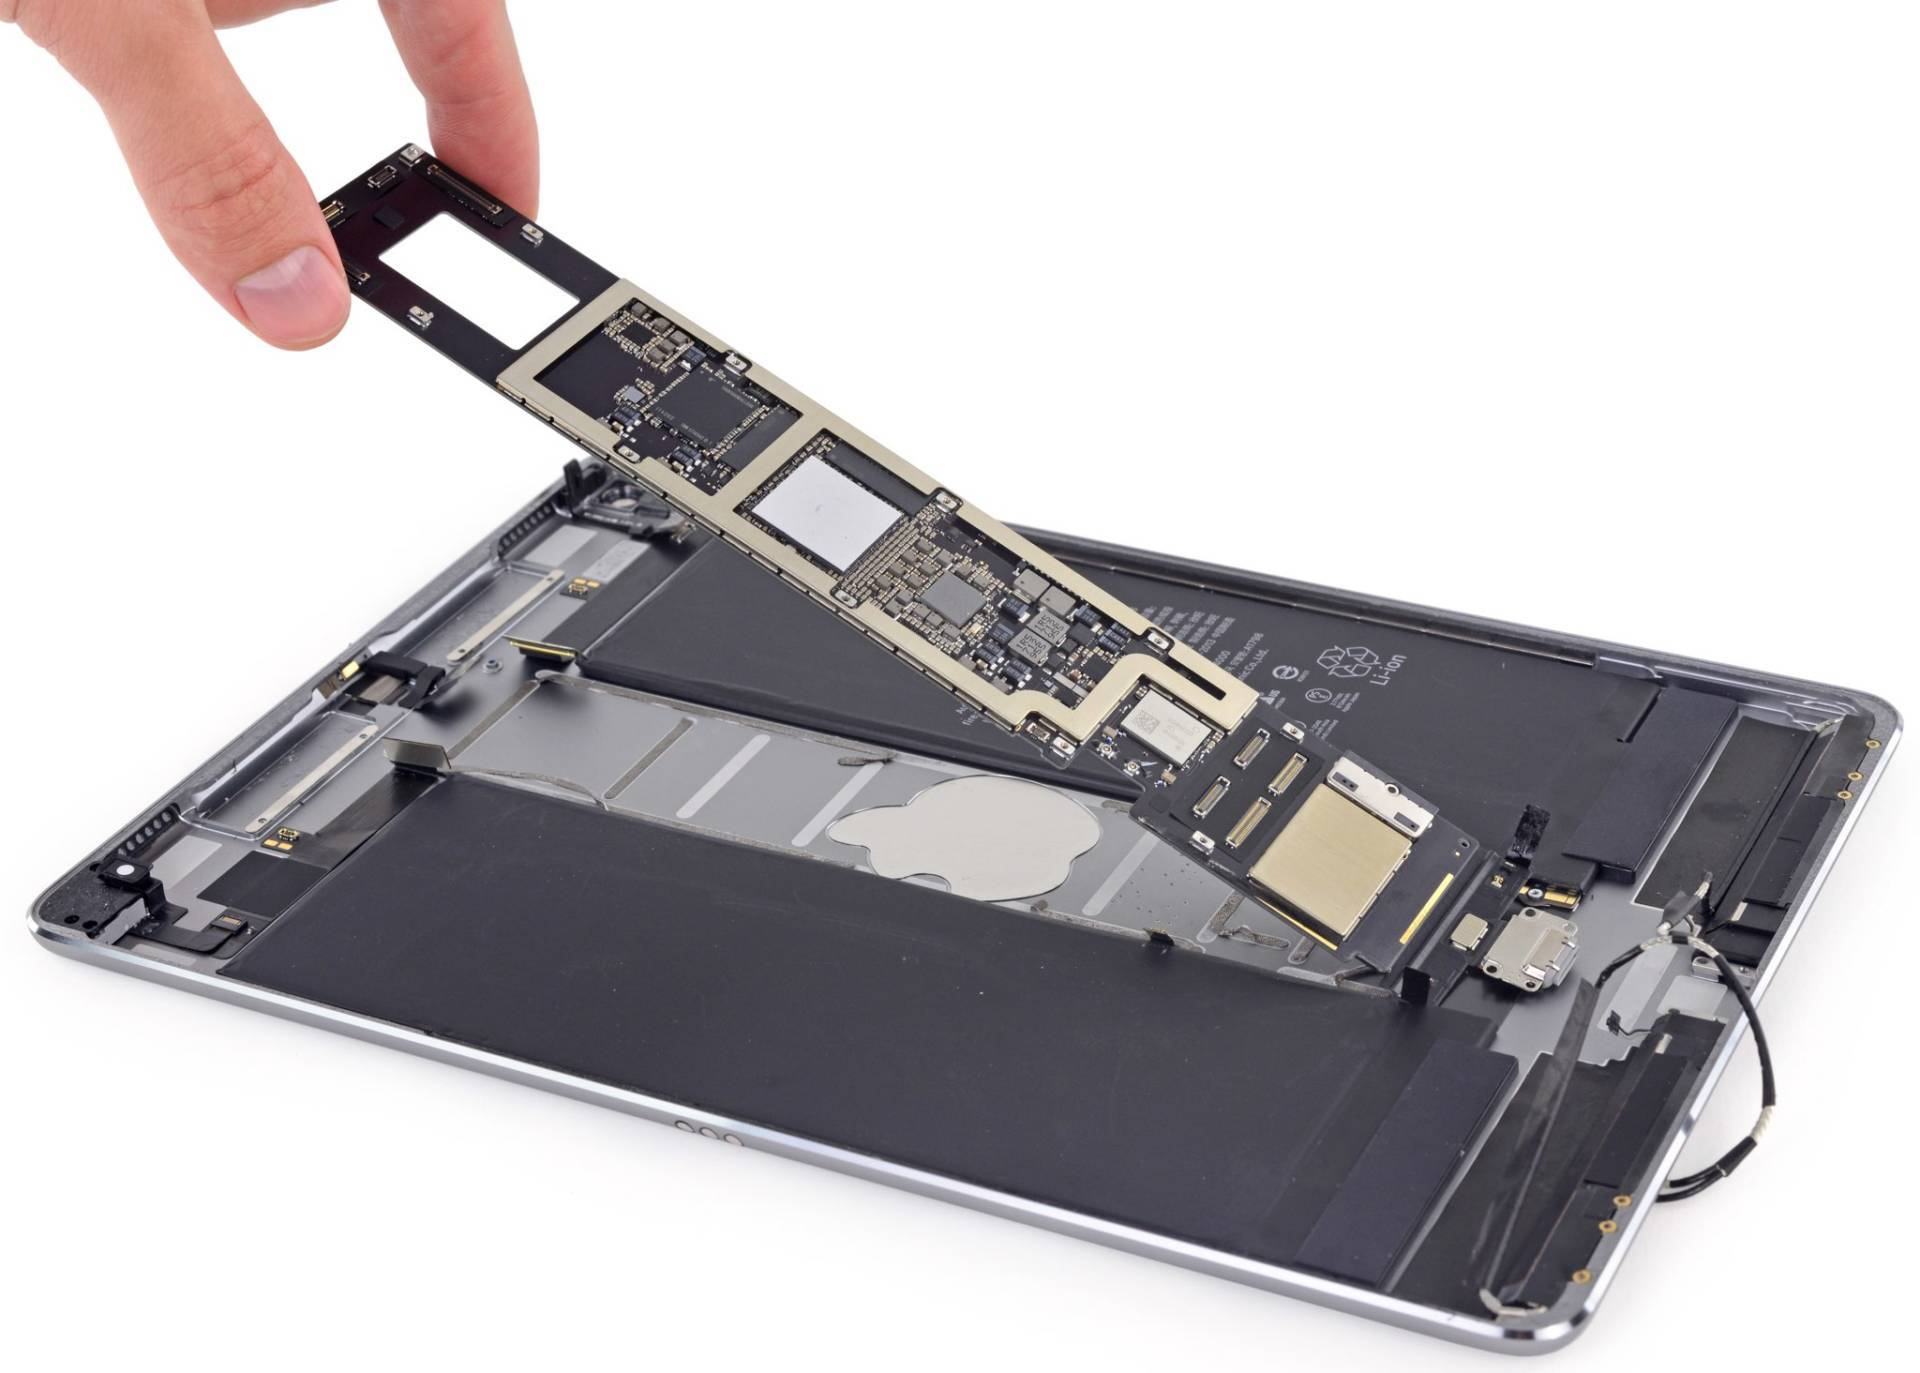 www.italiamac.it 10.5 inch ipad pro ifixit teardown 002 Il teardown di iFixit rivela 4GB di RAM sul nuovo iPad Pro da 10.5 pollici